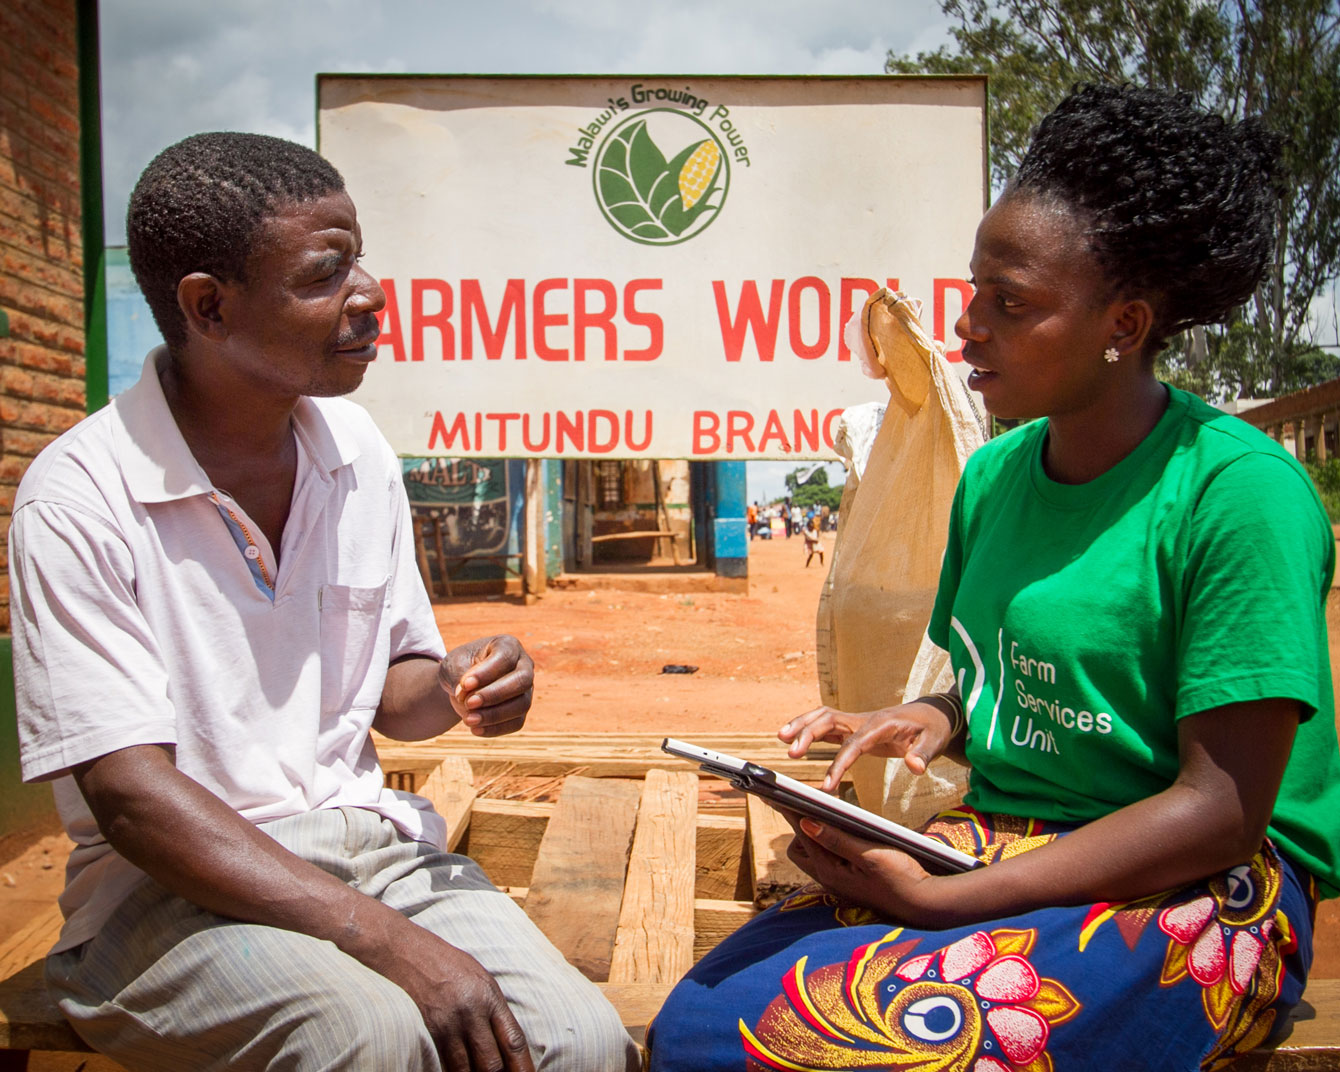 An FSU extension worker interviews a farmer outside one of the Farmer World shops